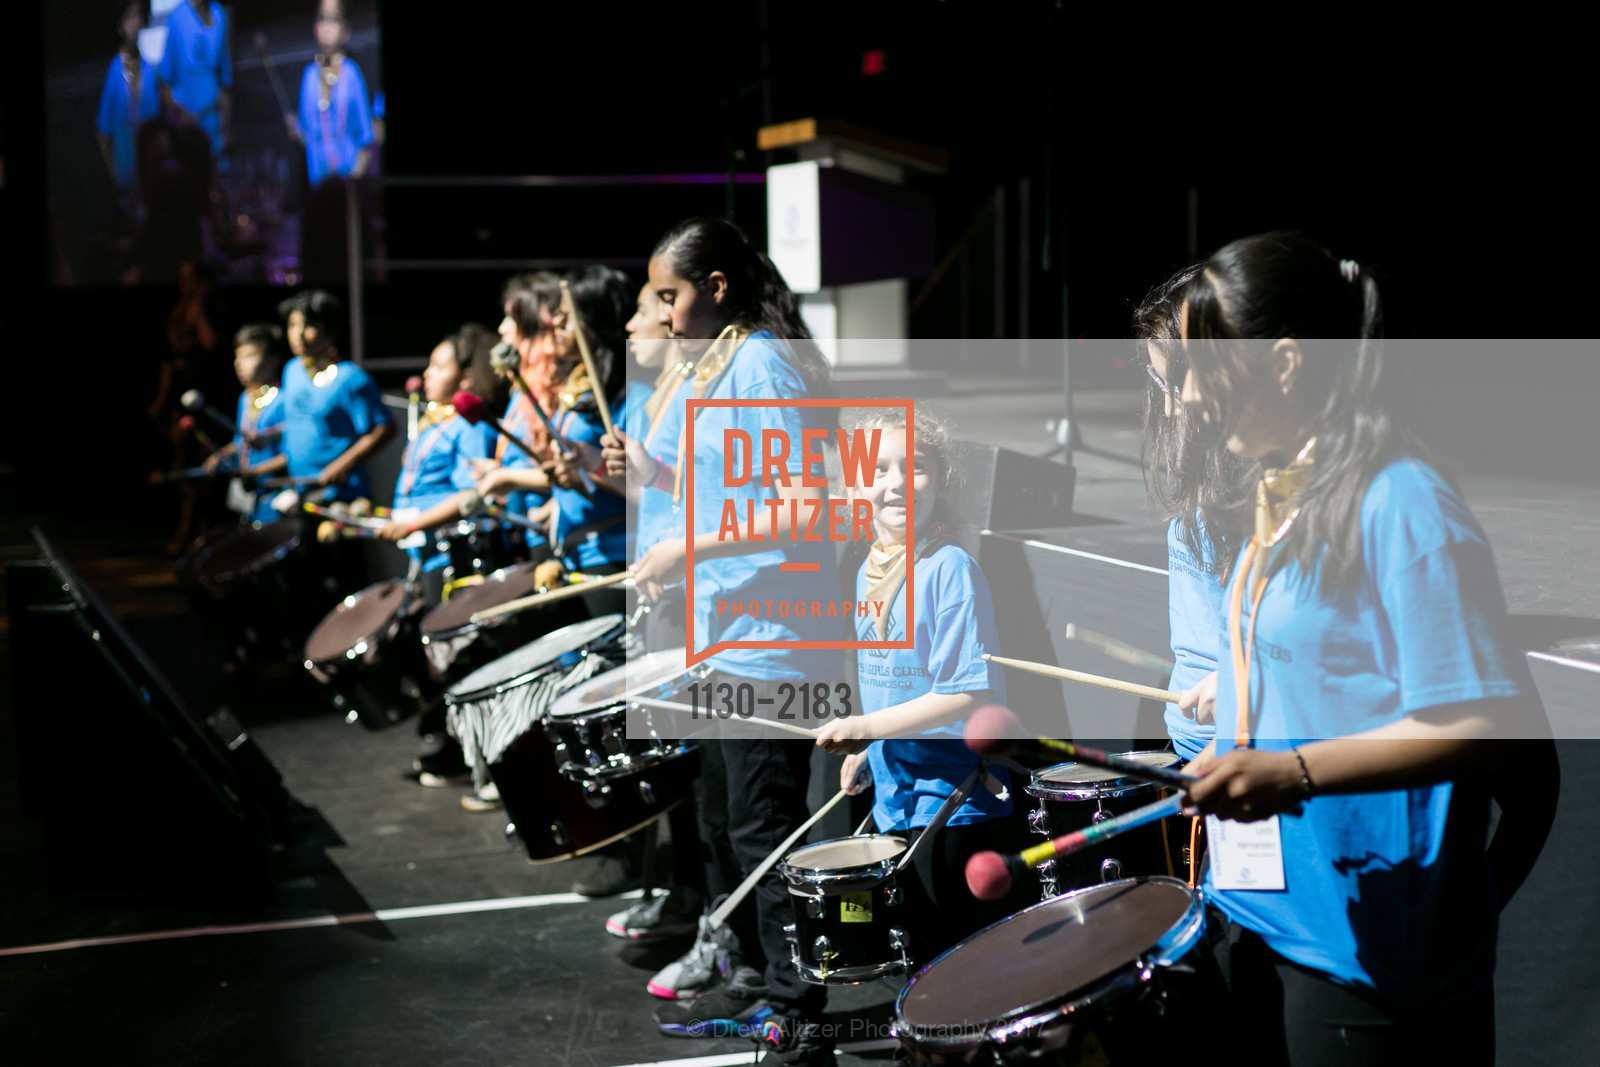 Drumline Performers, Photo #1130-2183